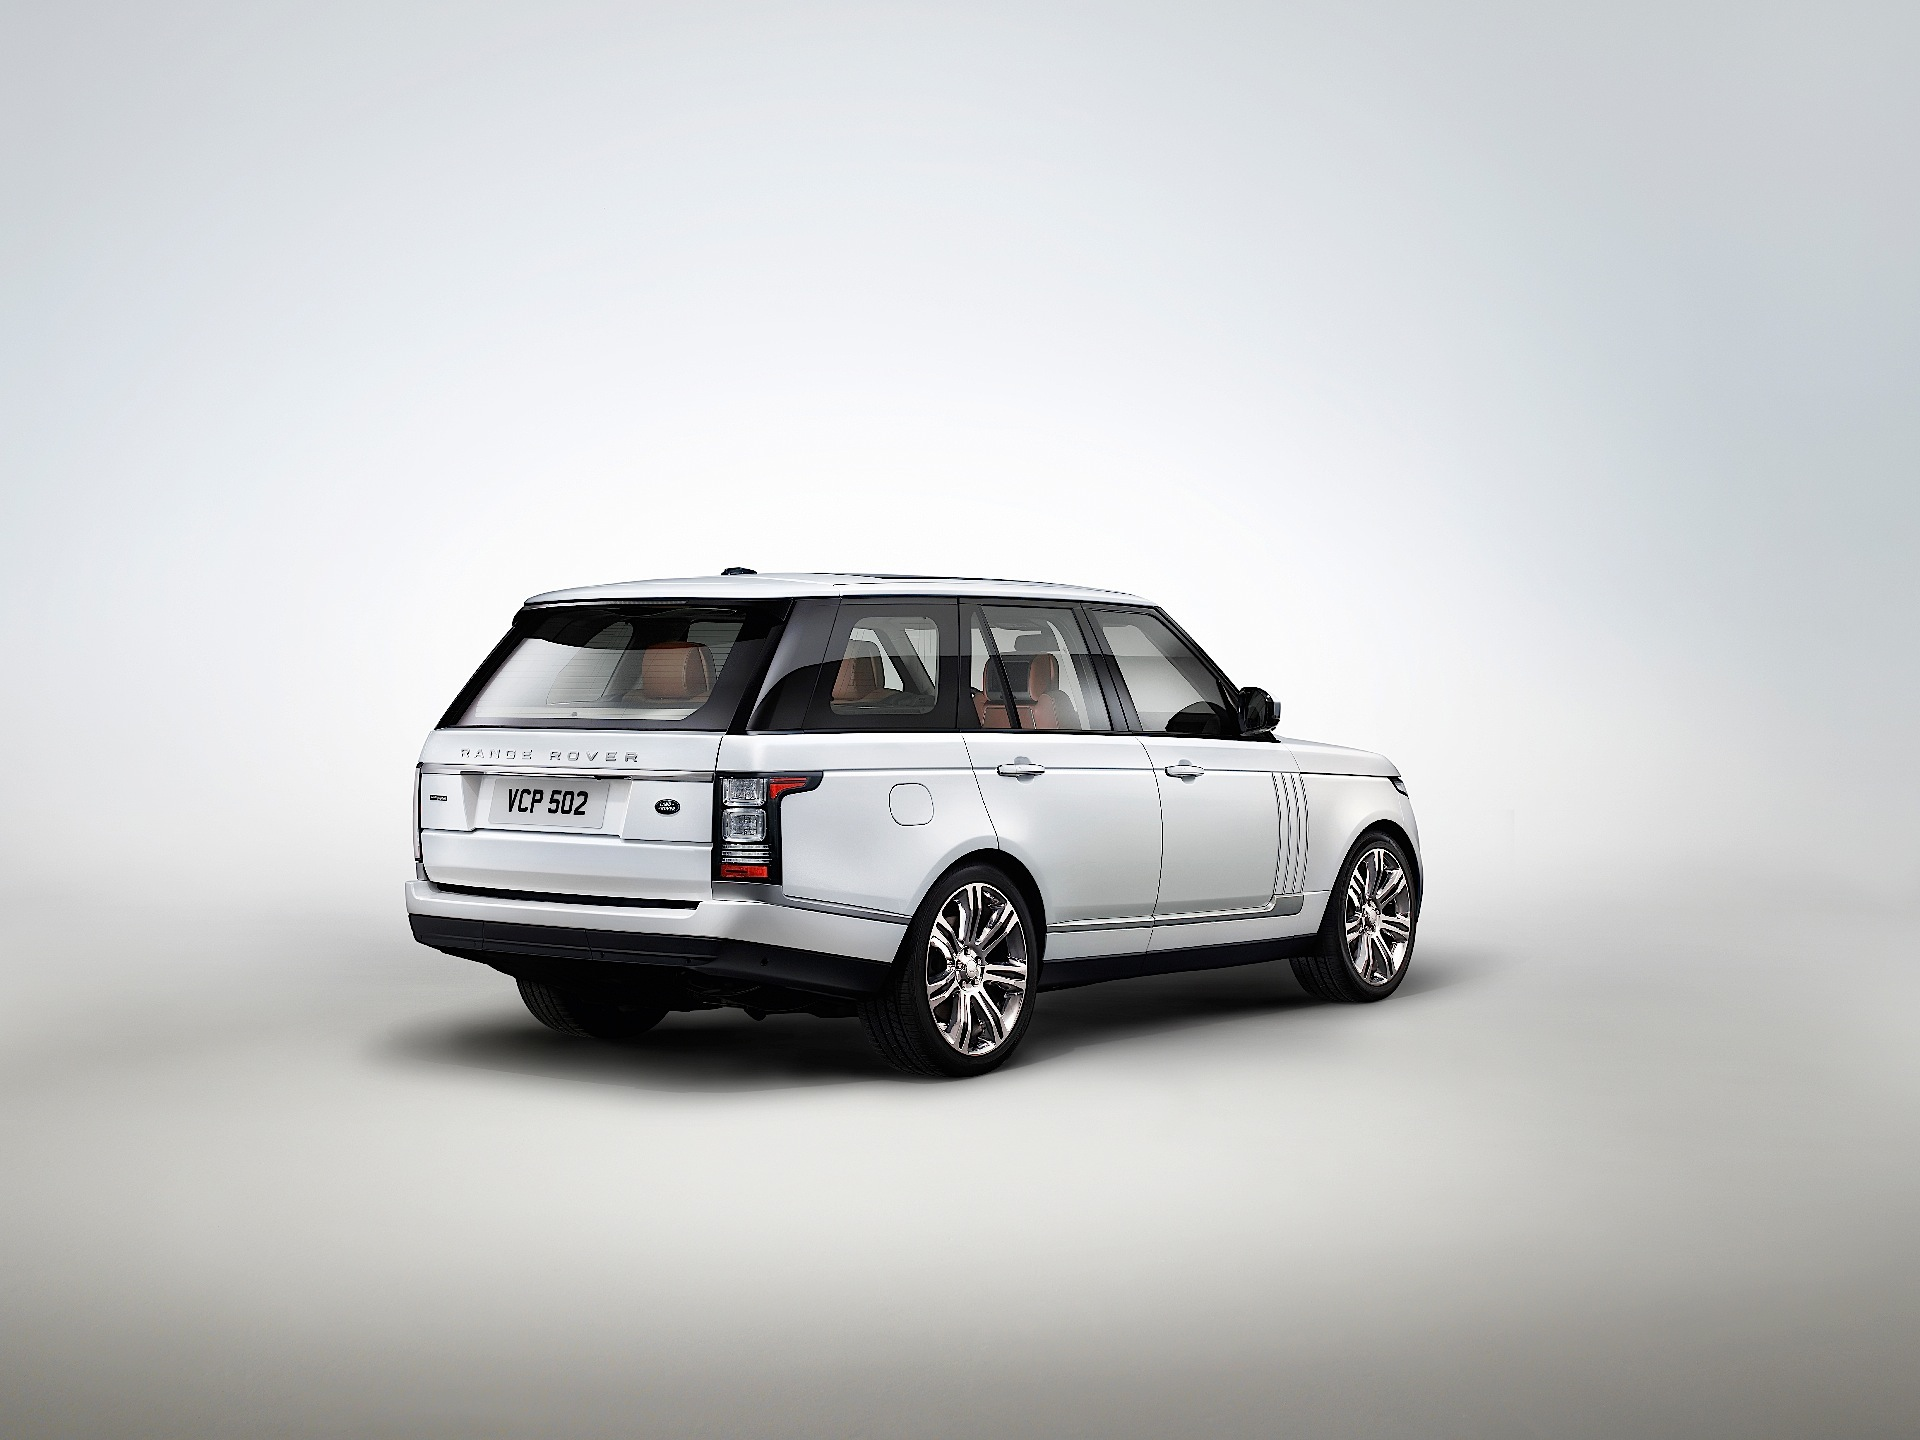 land rover range rover l specs photos 2014 2015 2016 2017 2018 2019 autoevolution. Black Bedroom Furniture Sets. Home Design Ideas